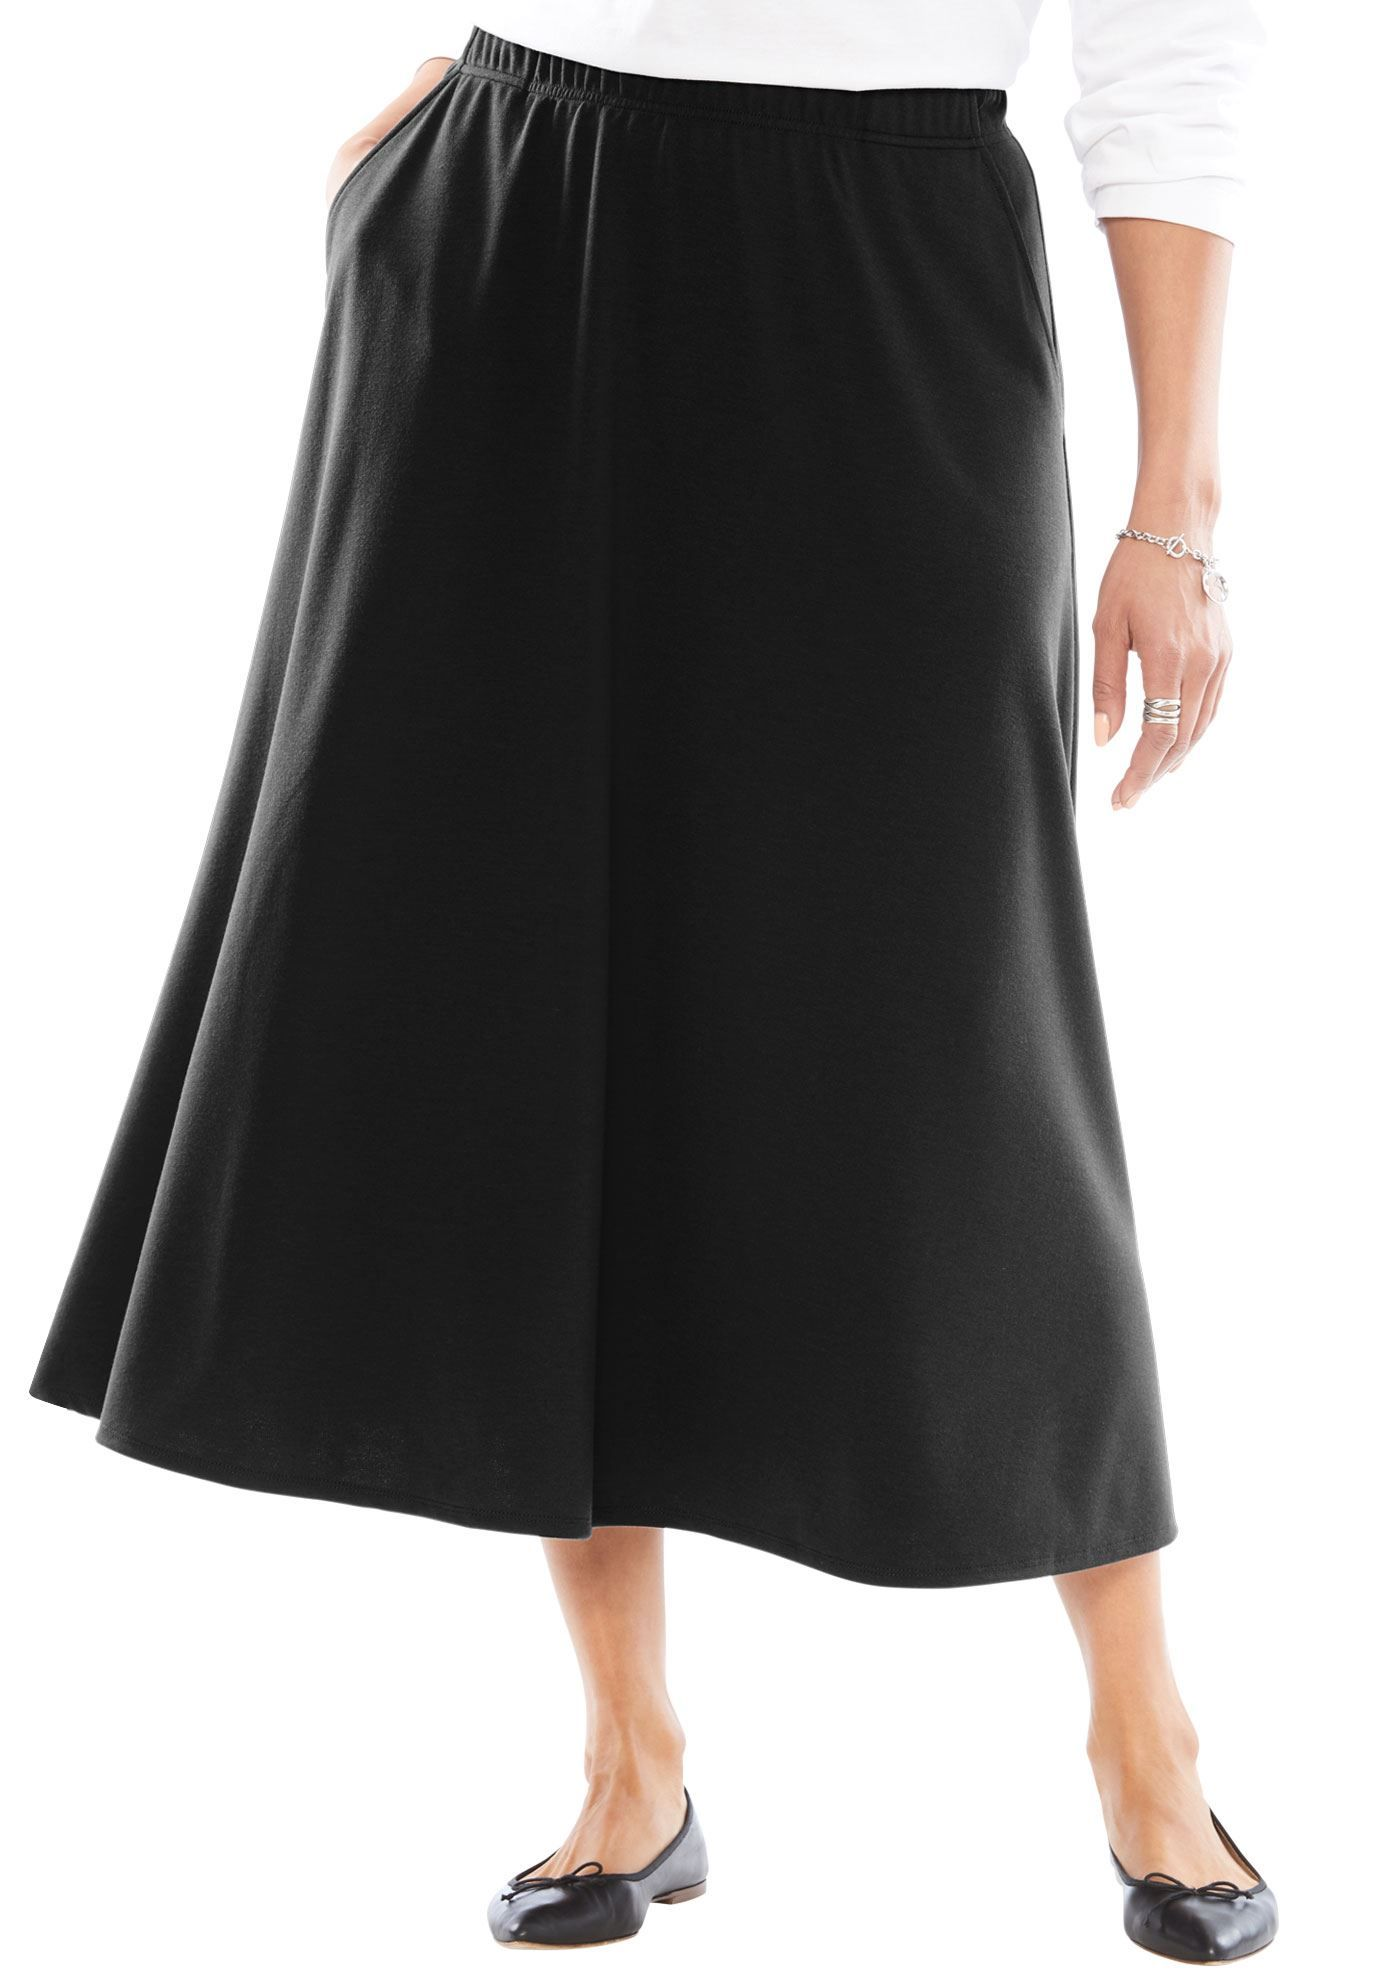 21a92d895 Petite A-Line Ponte Skirt - Women's Plus Size Clothing | Products ...